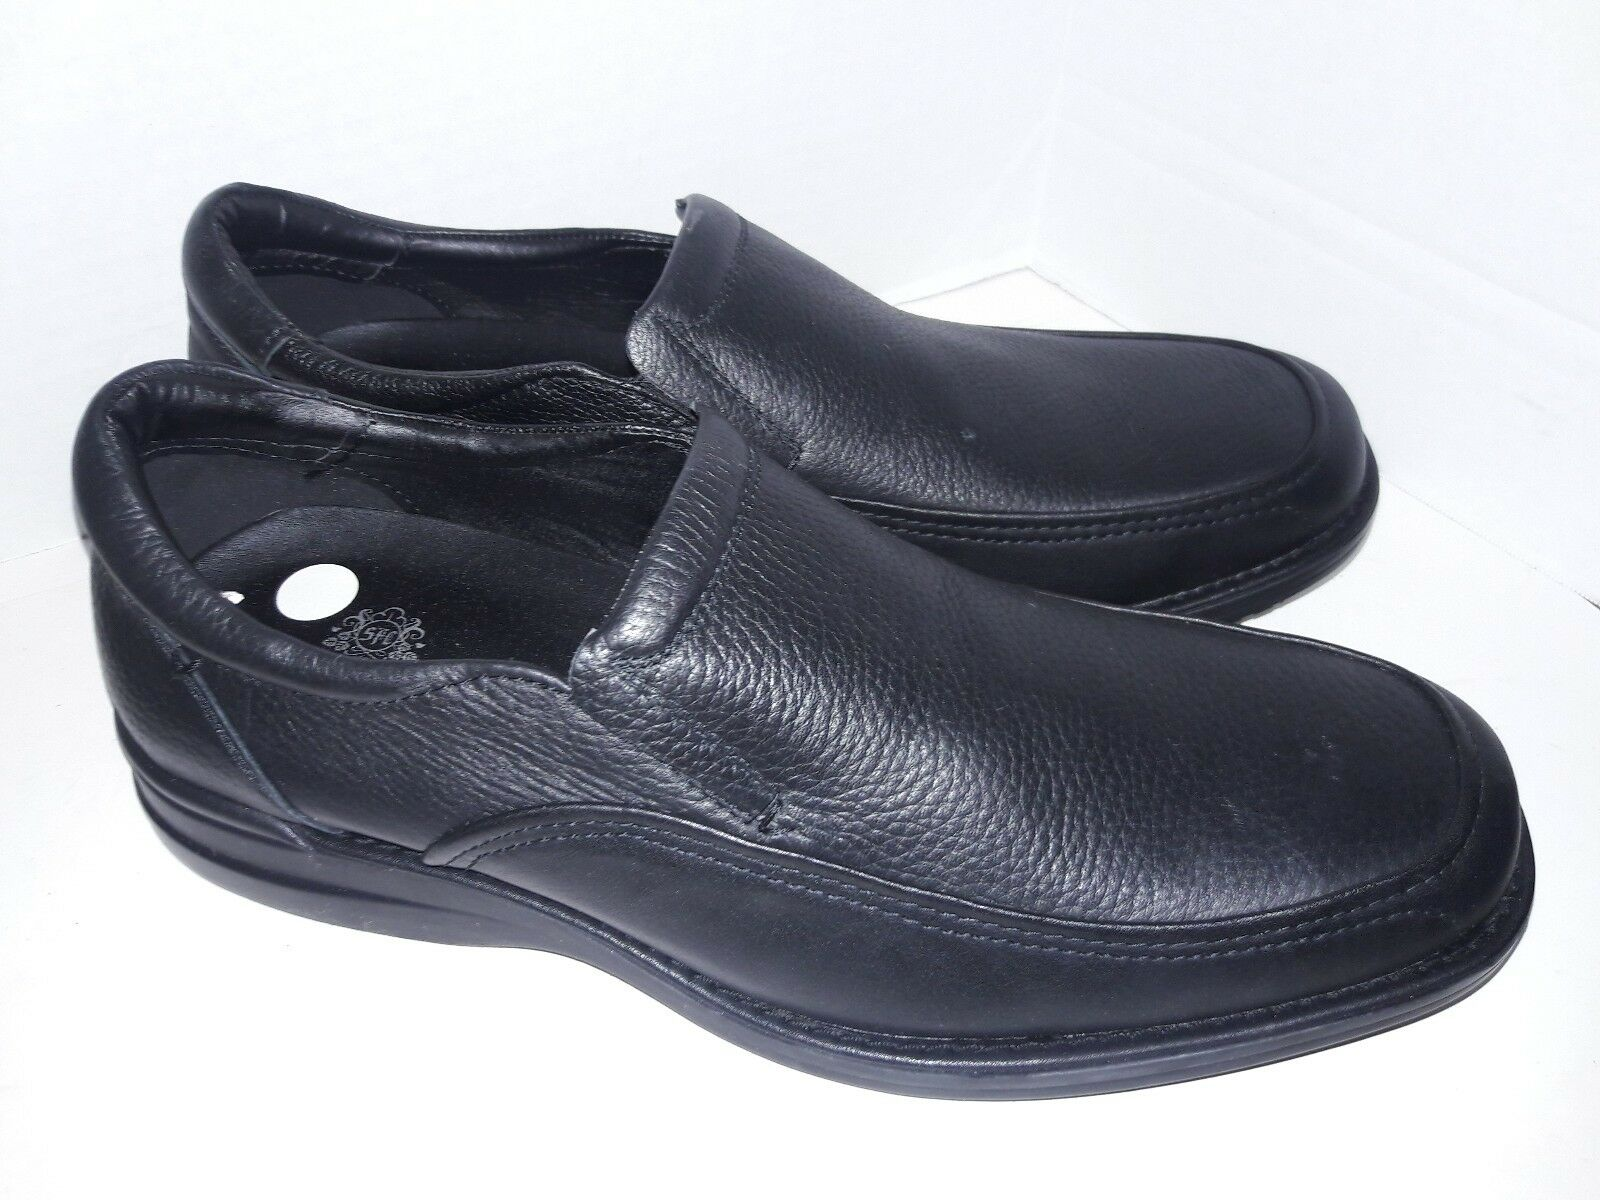 shoes For Crews SFC 1022  Dylan  Black Leather Loafers Mens Slip Oil Resistant S